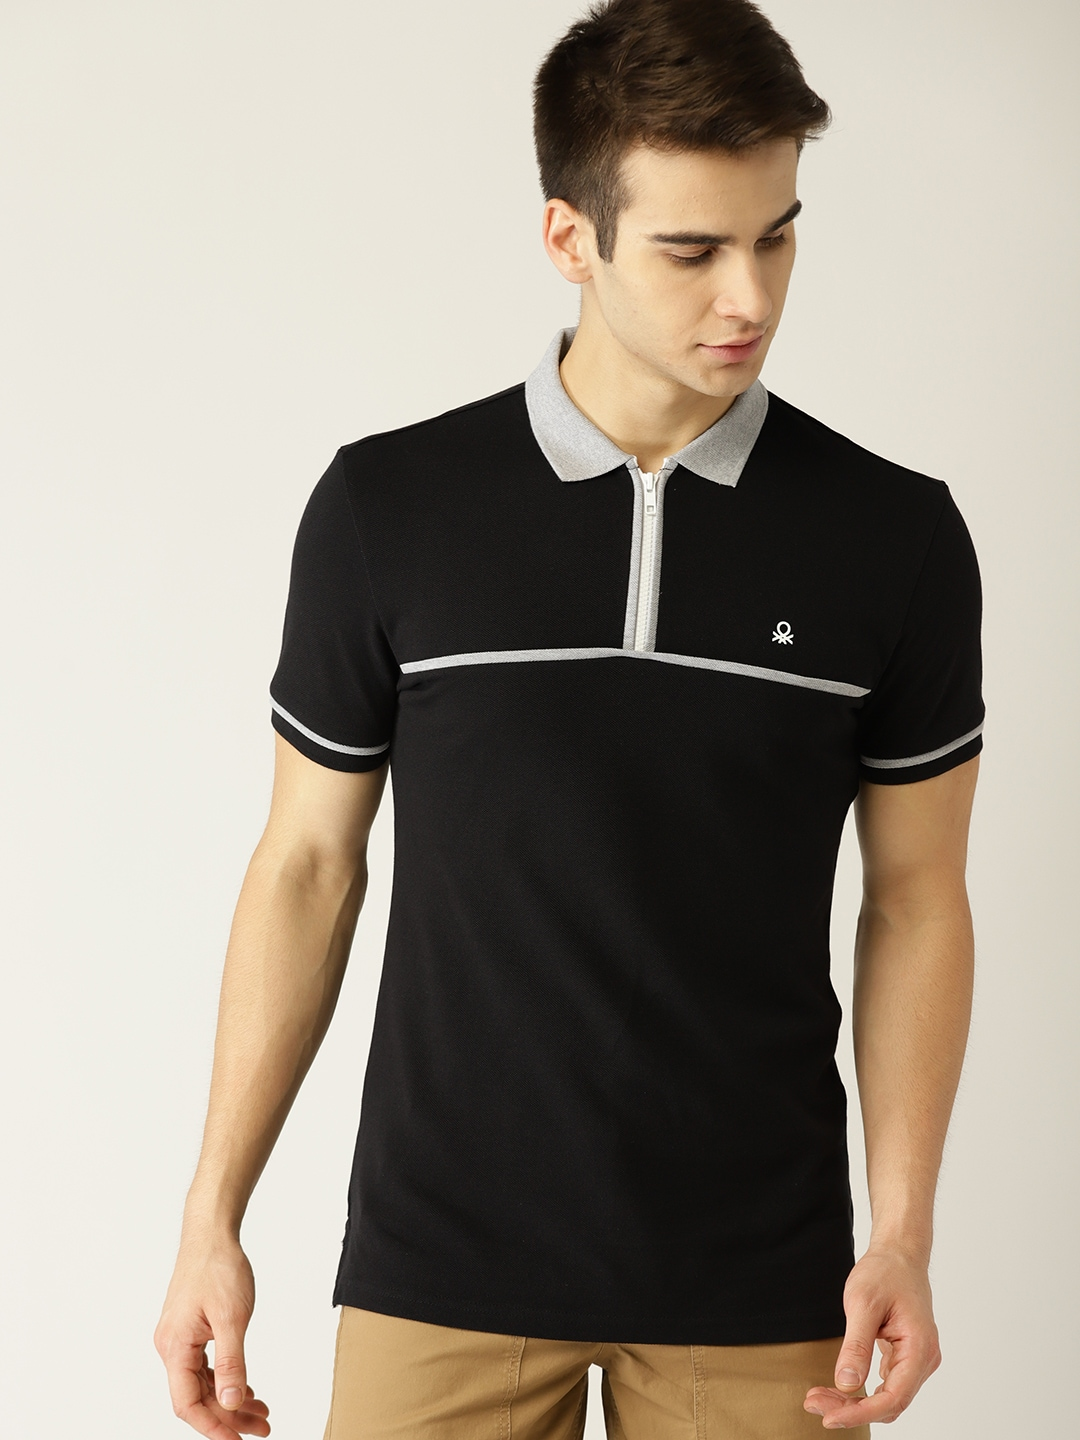 a46186508 United Colors Of Benetton Black Tshirts - Buy United Colors Of Benetton  Black Tshirts Online in India